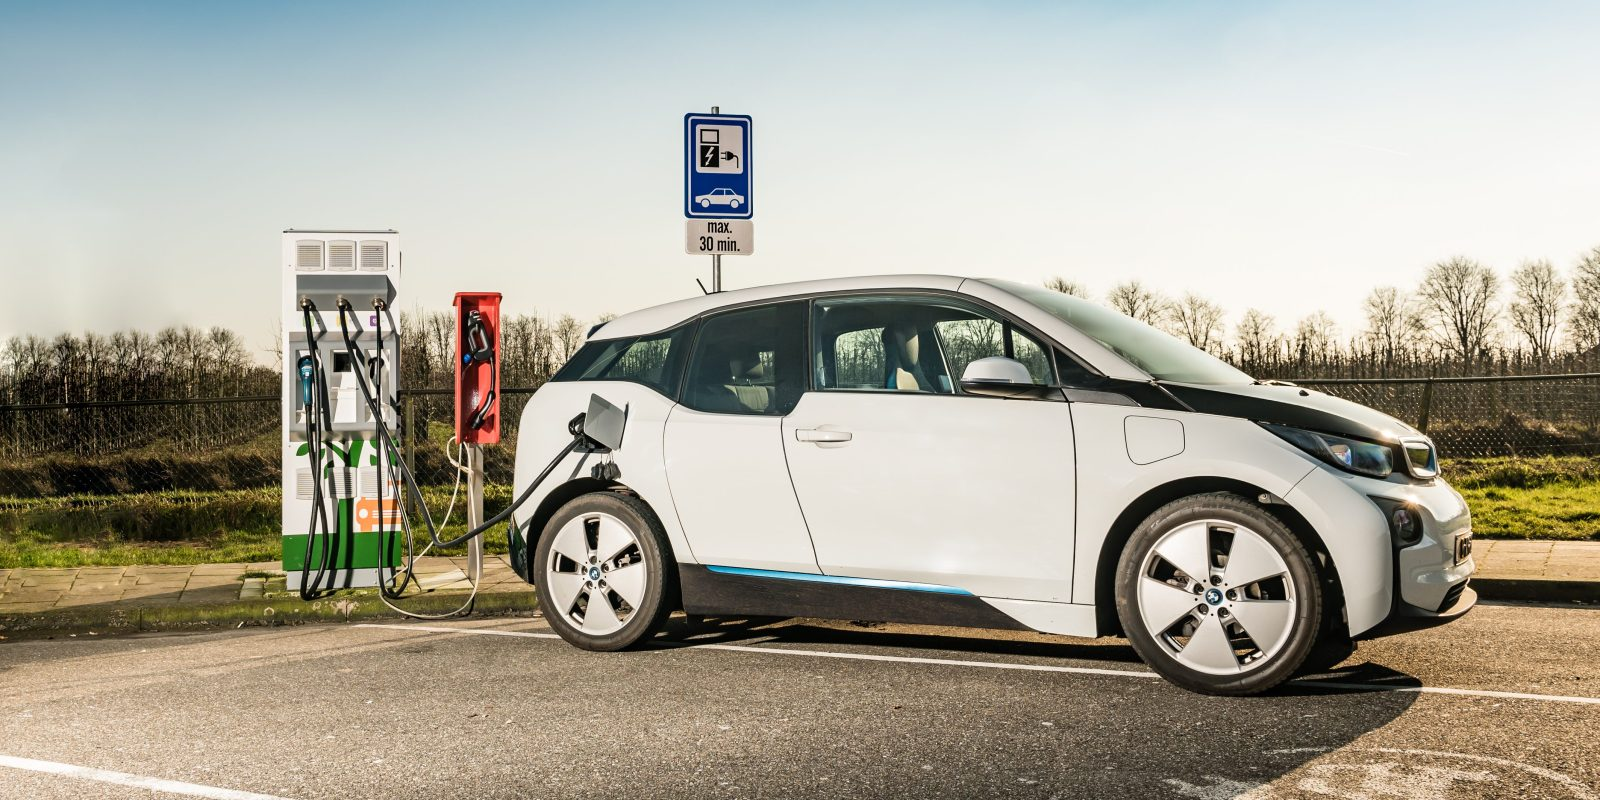 A Plan For A Network Of Ev Charging Stations Connected To 2gw Of